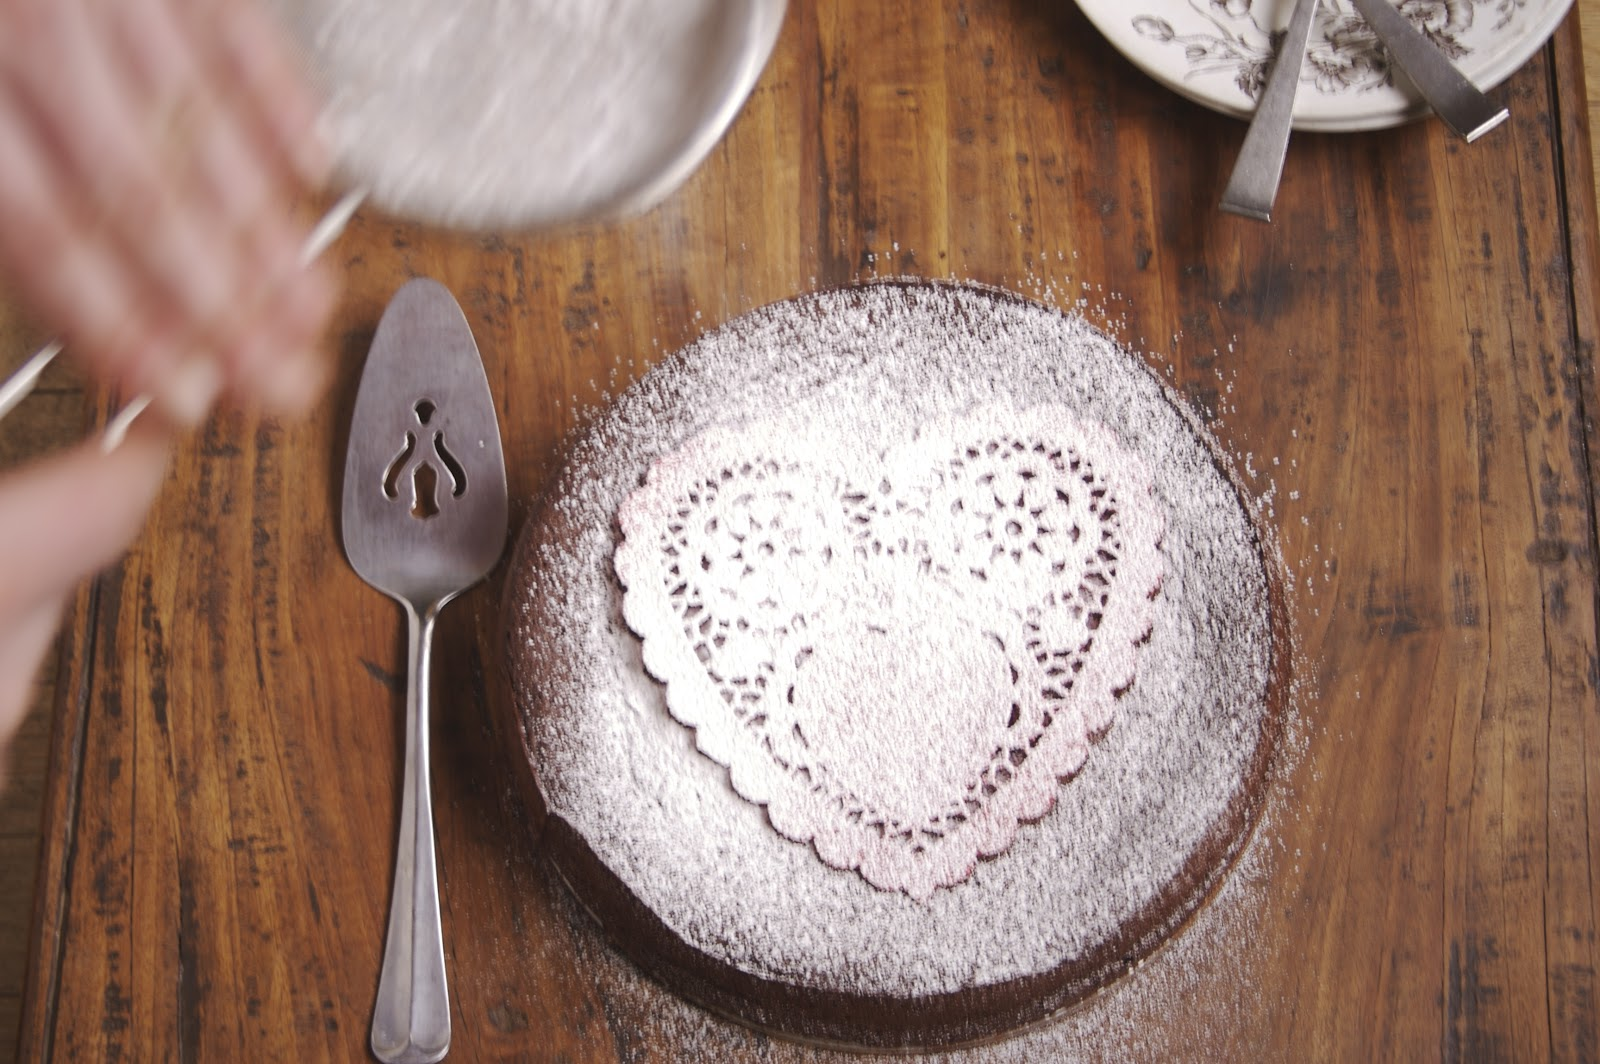 A Full Life: Flourless Chocolate Cake for Valentine's Day